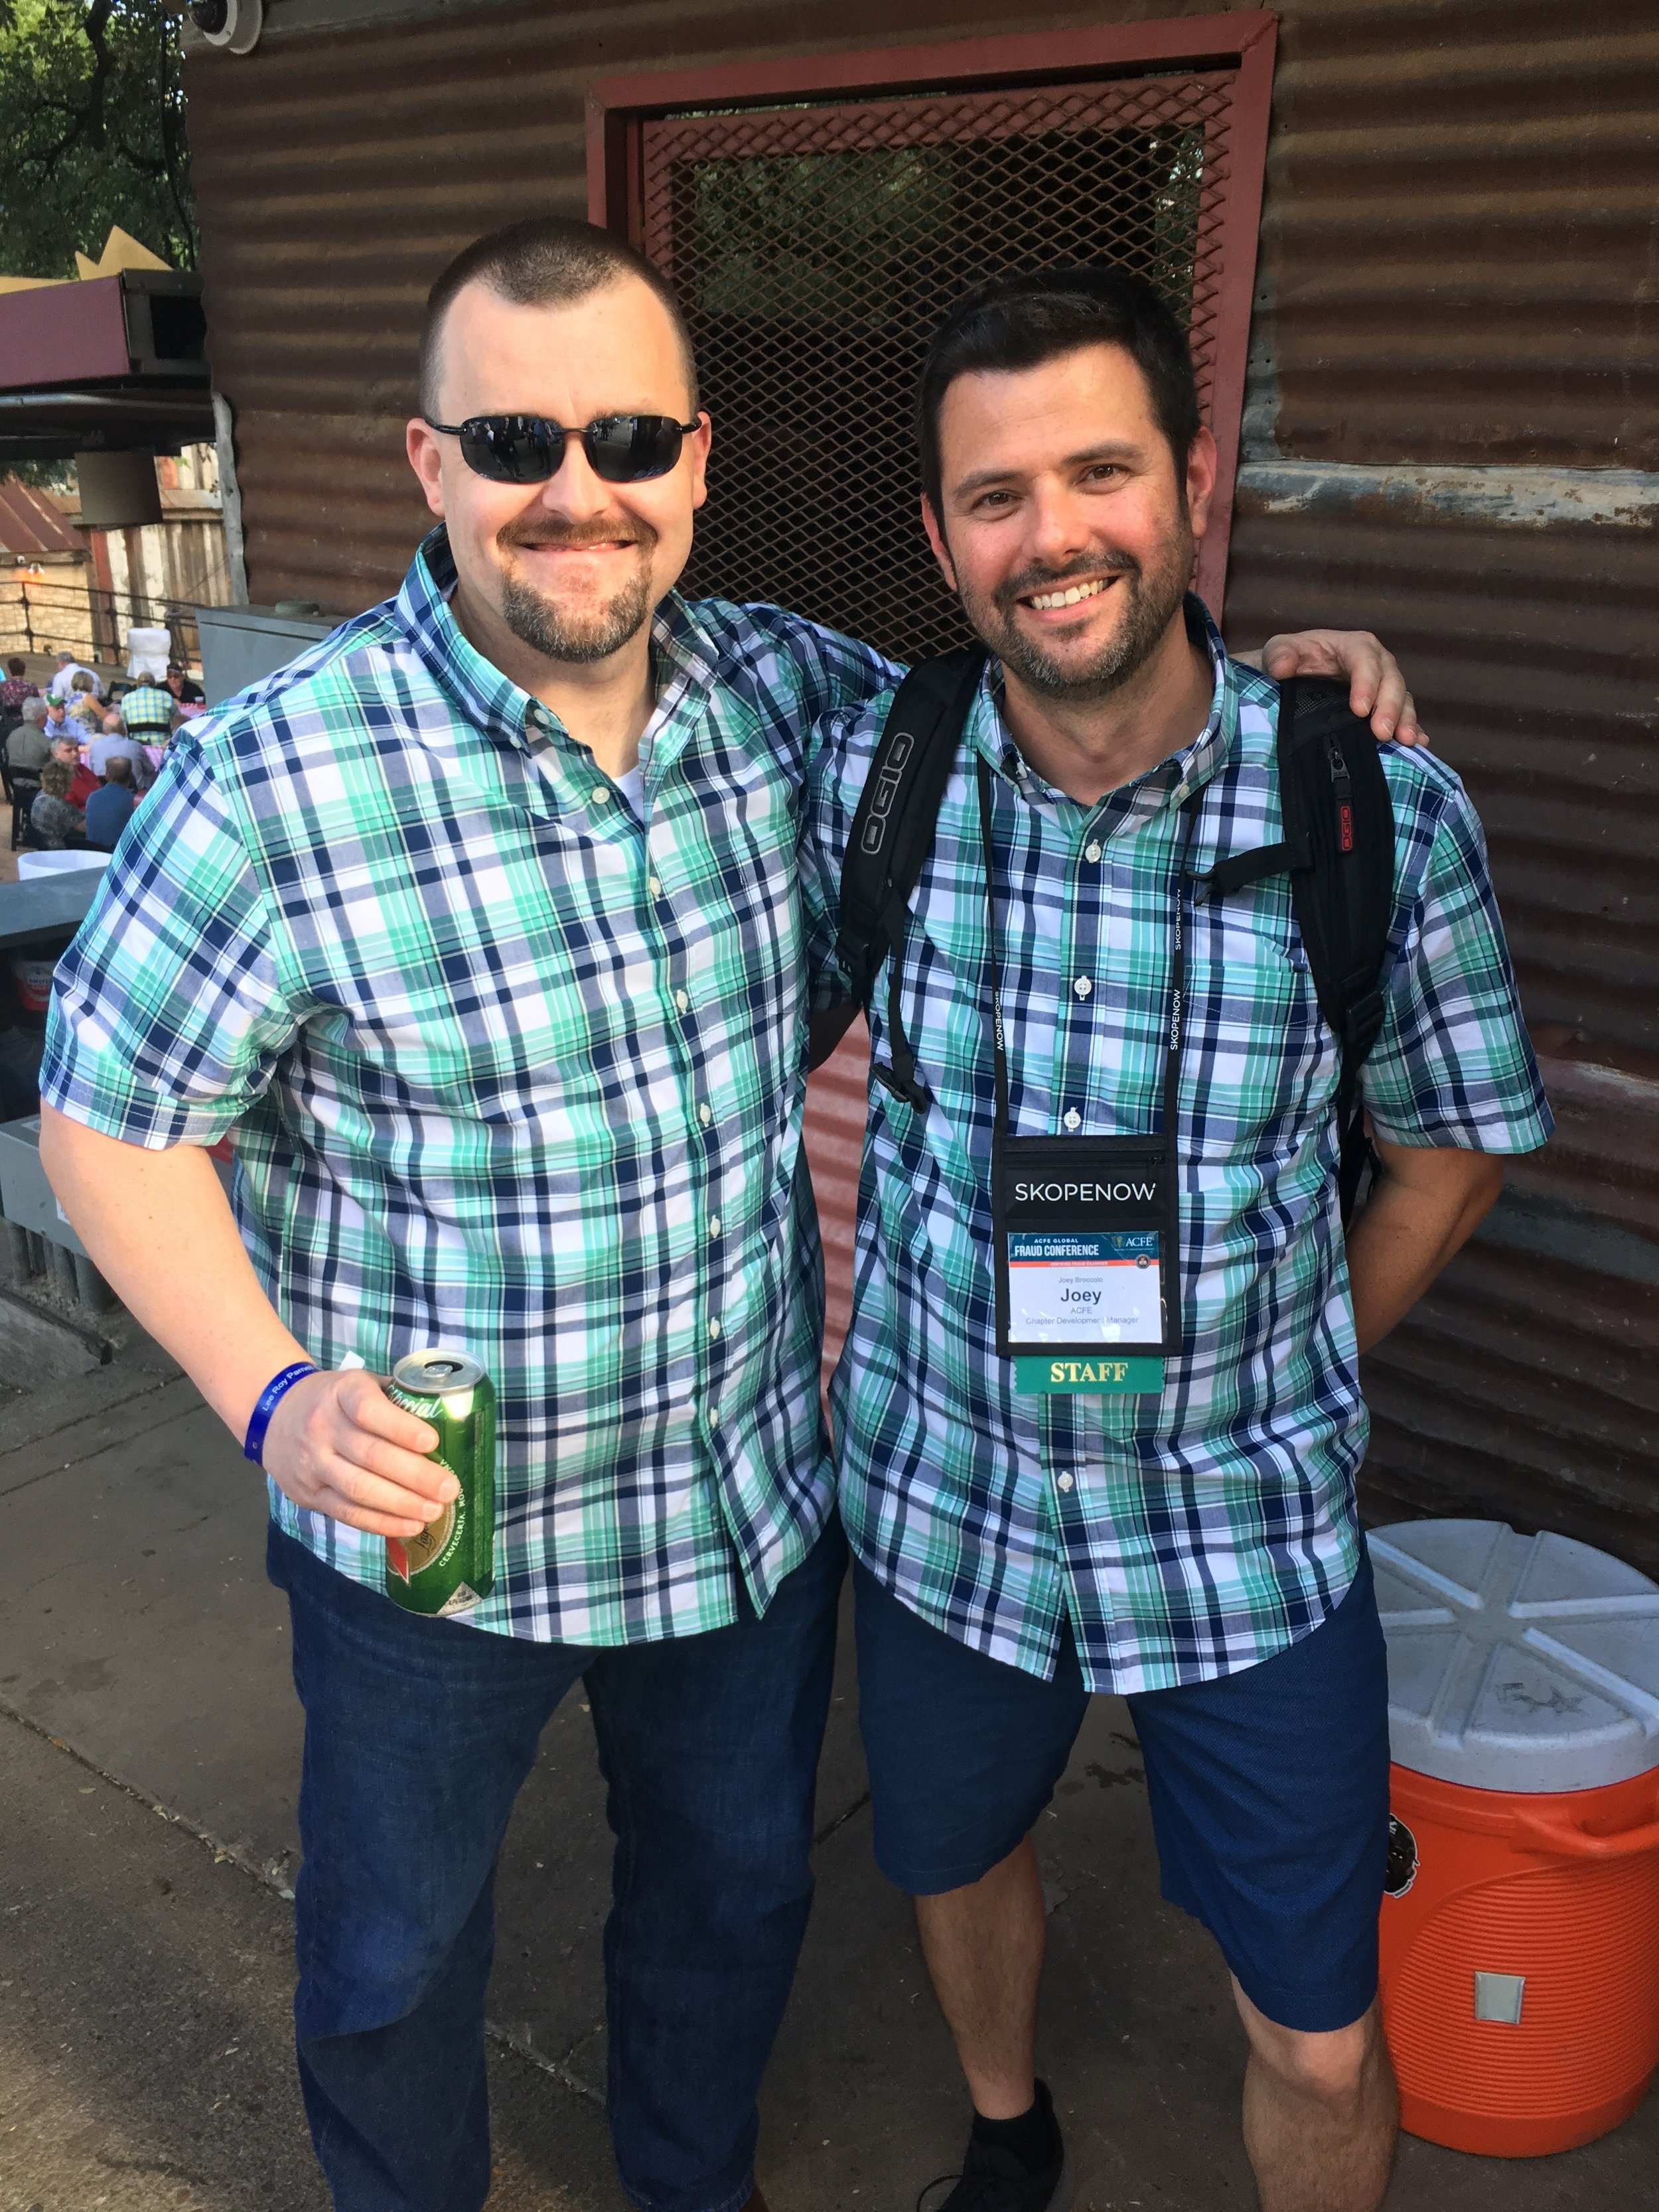 Ryan Hubbs and Joey Broccolo wearing the same outfit at the concert.